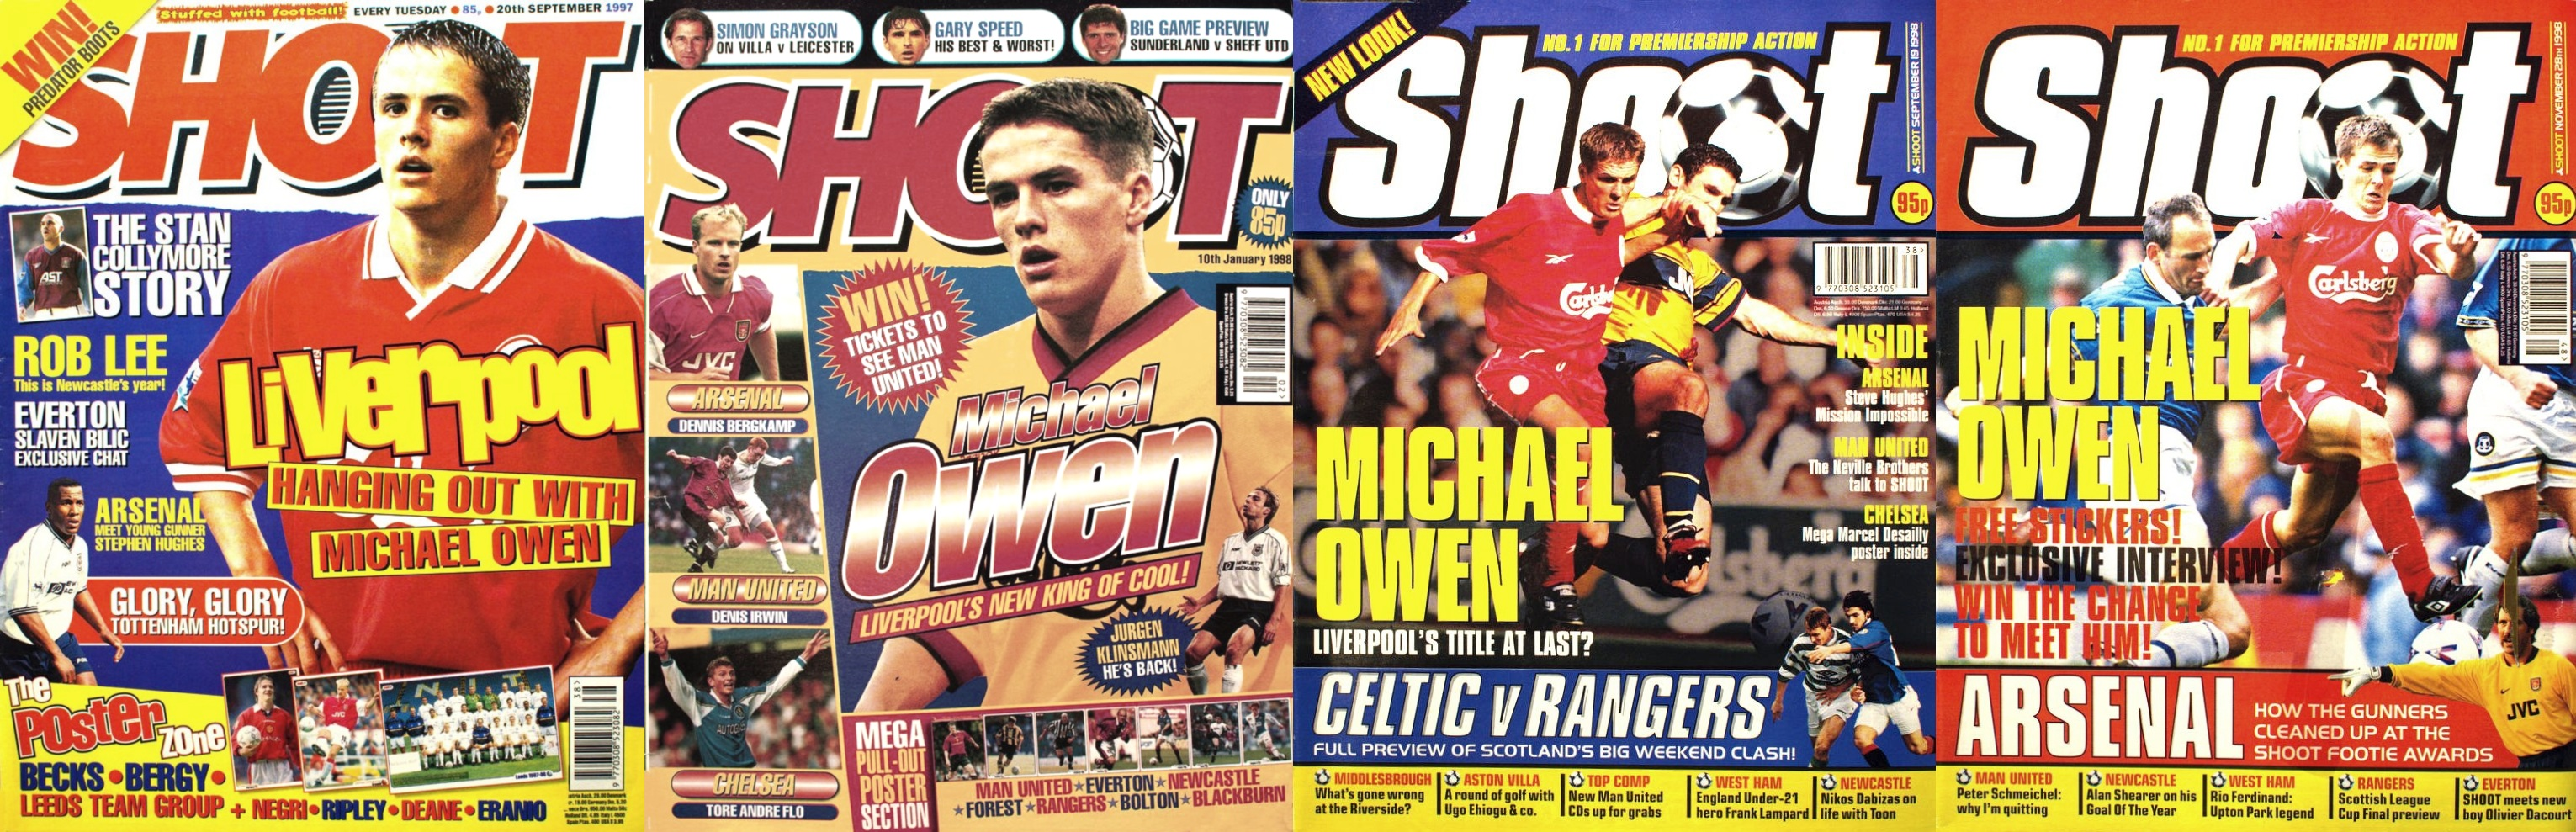 Michael Owen on the cover of Shoot! 1997-1998